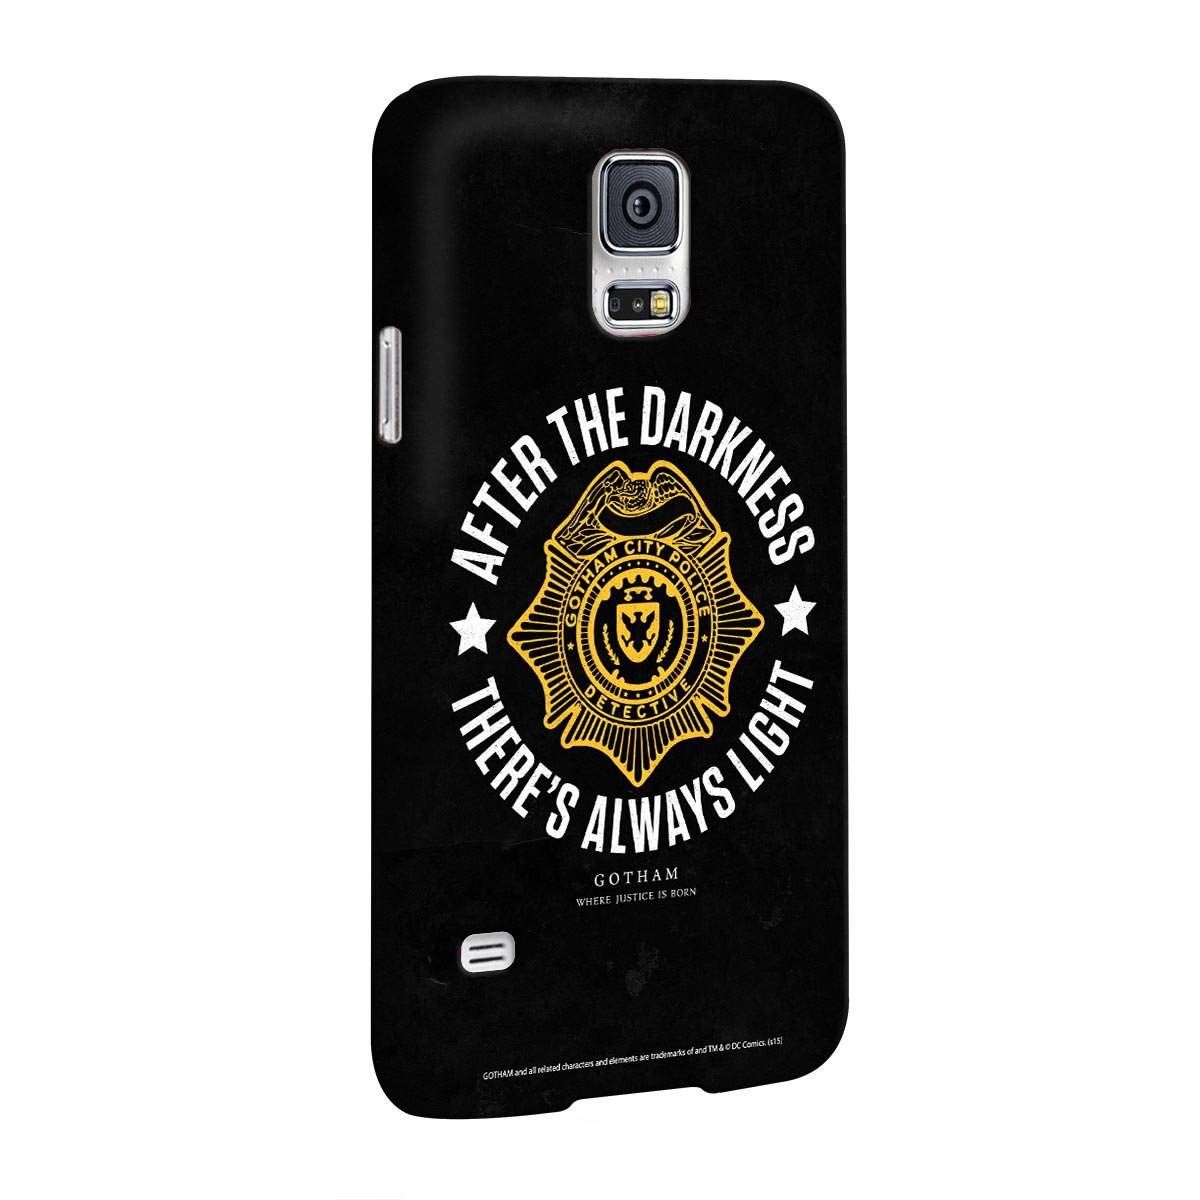 Capa para Samsung Galaxy S5 Gotham There�s Always Light